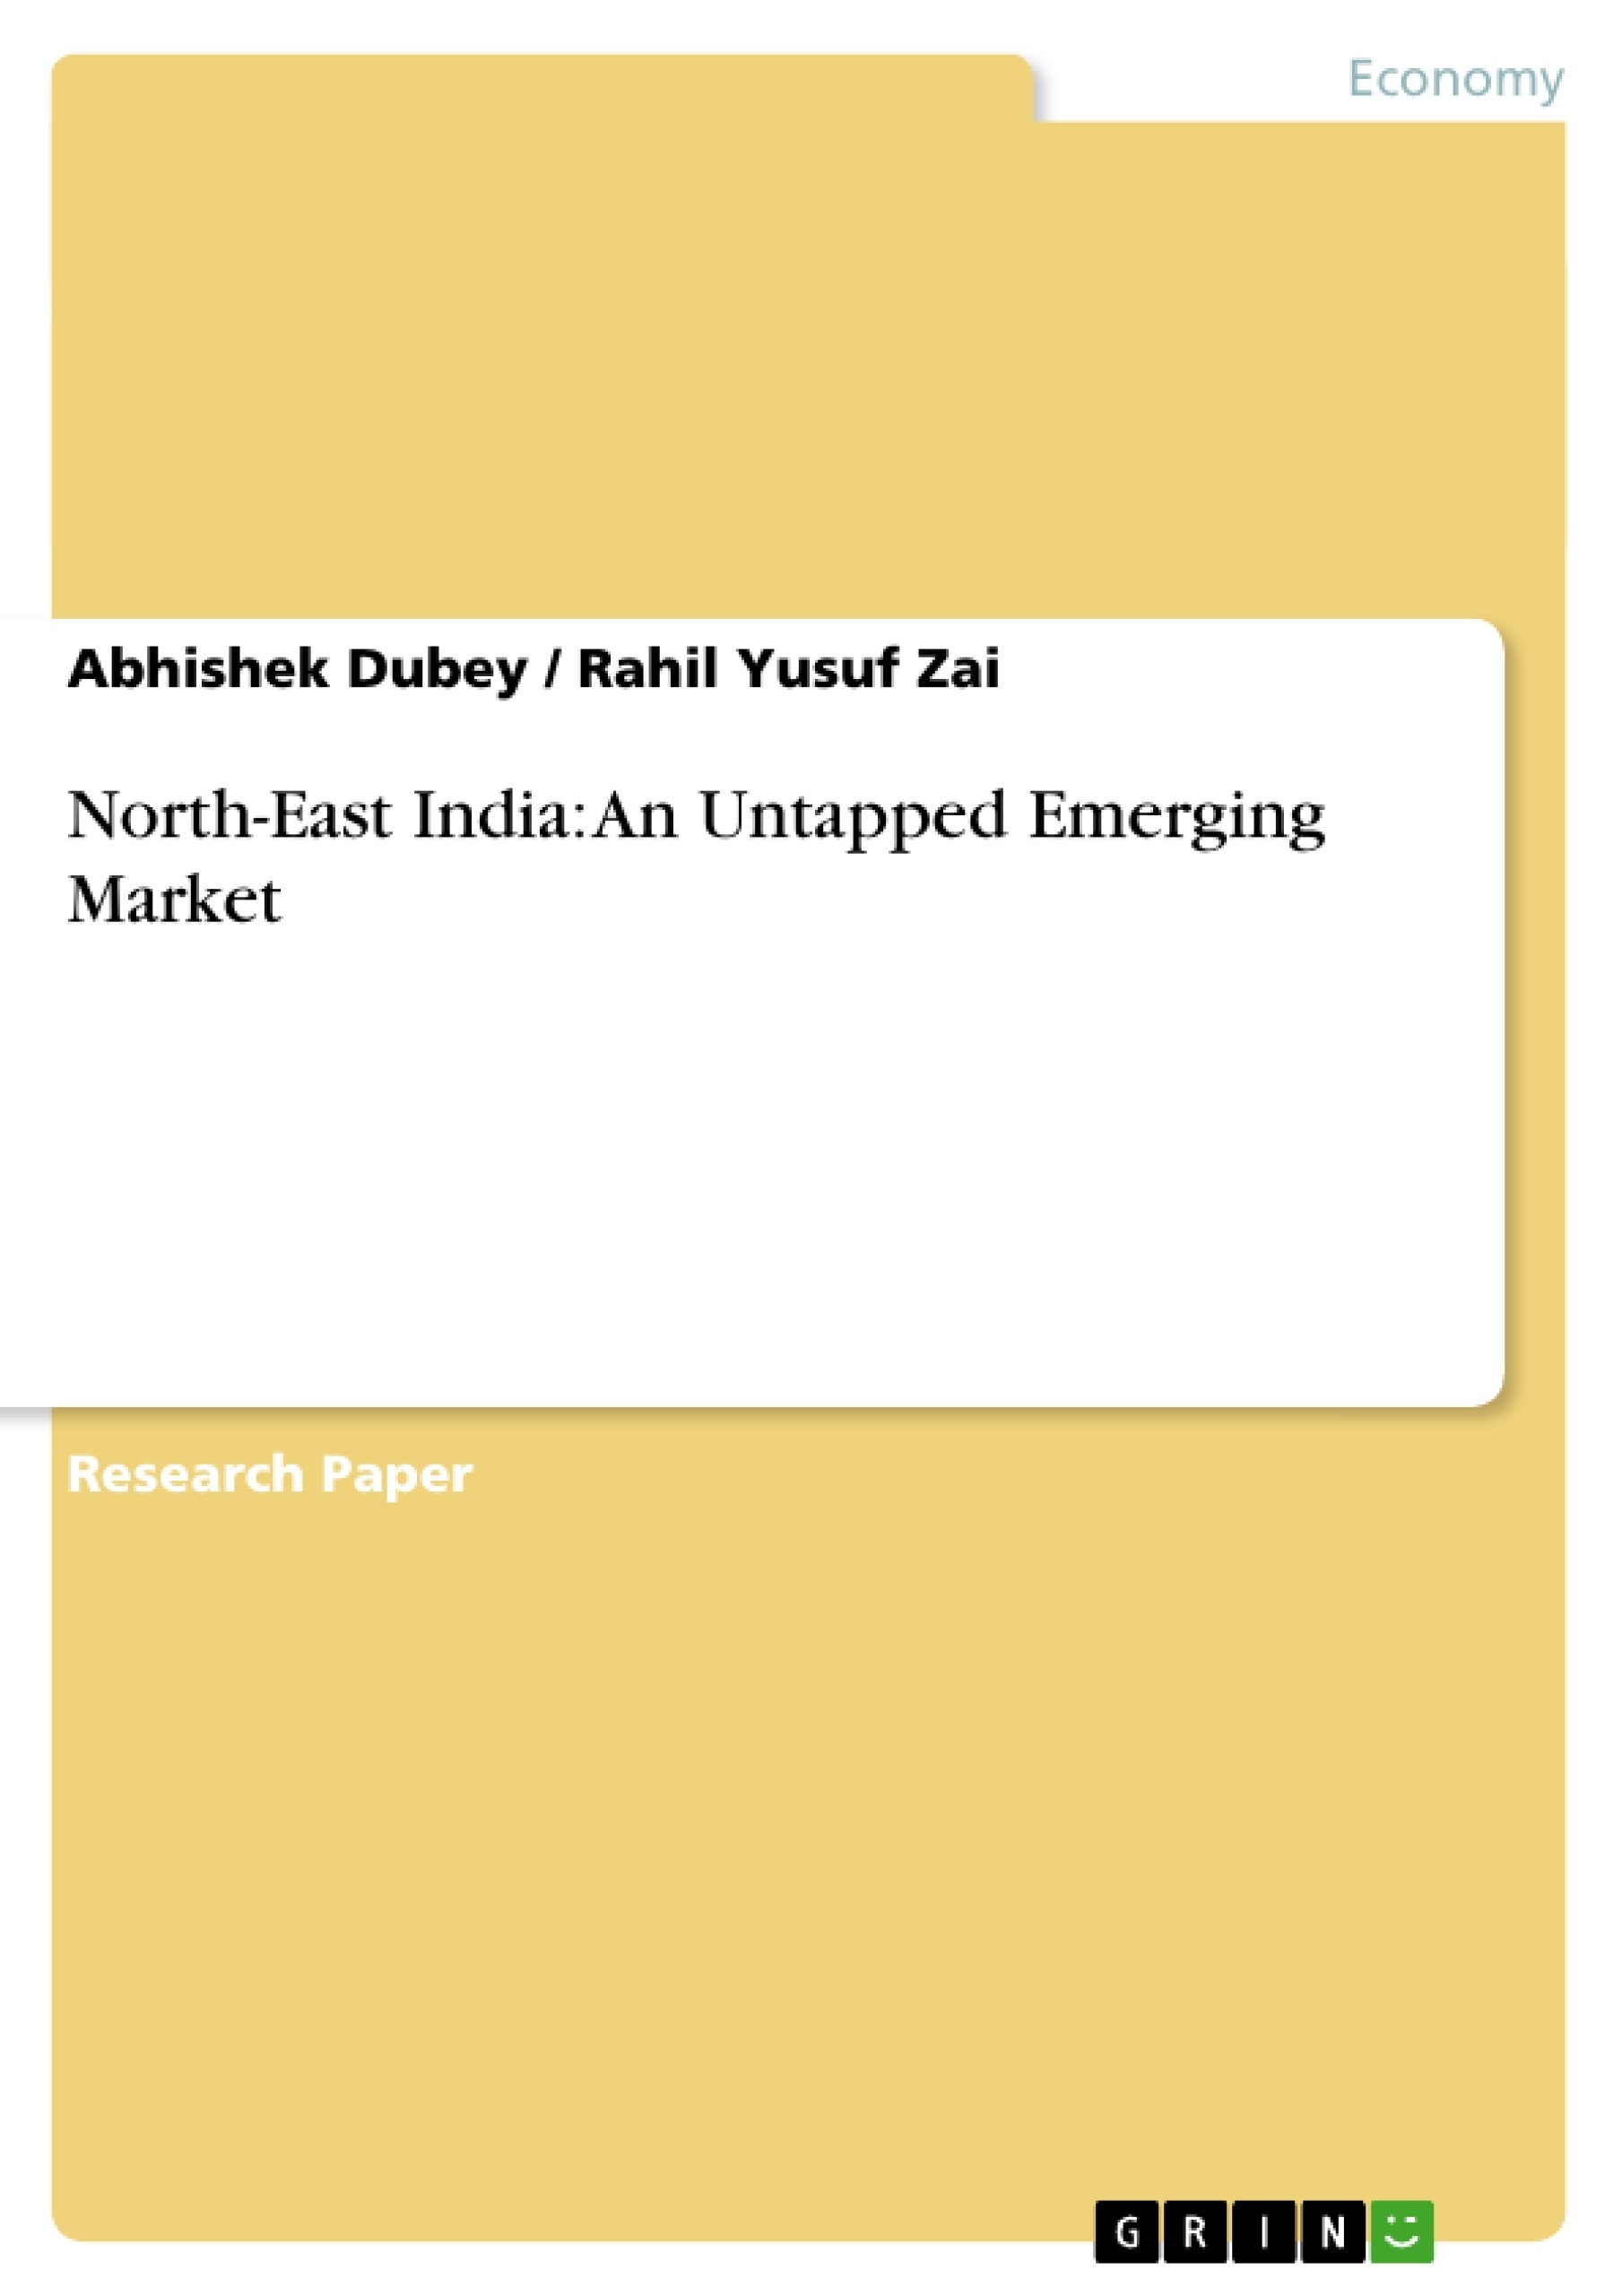 Title: North-East India: An Untapped Emerging Market